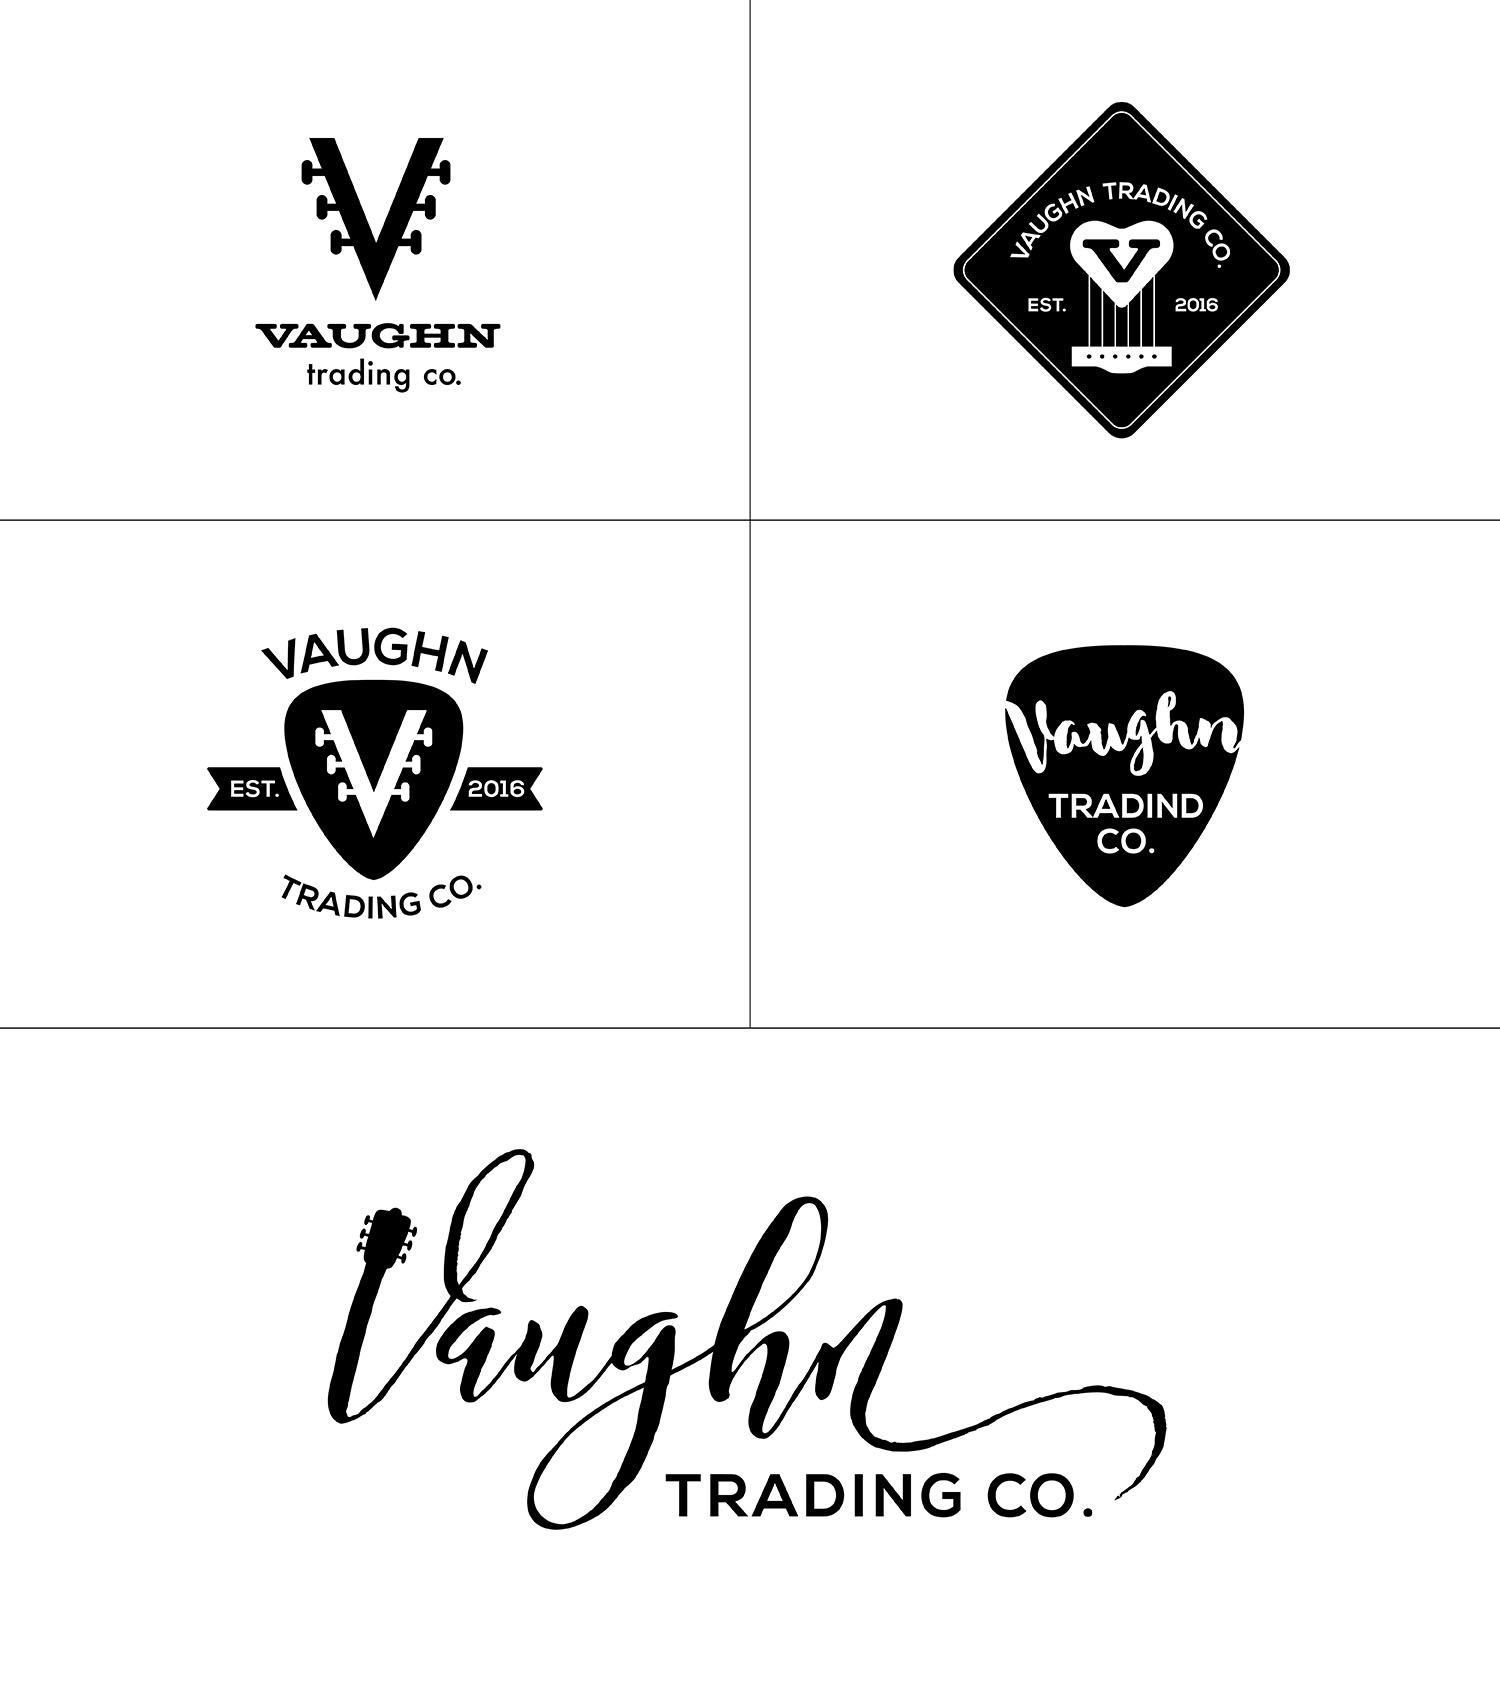 Vaughn Trading Co. Logo Options